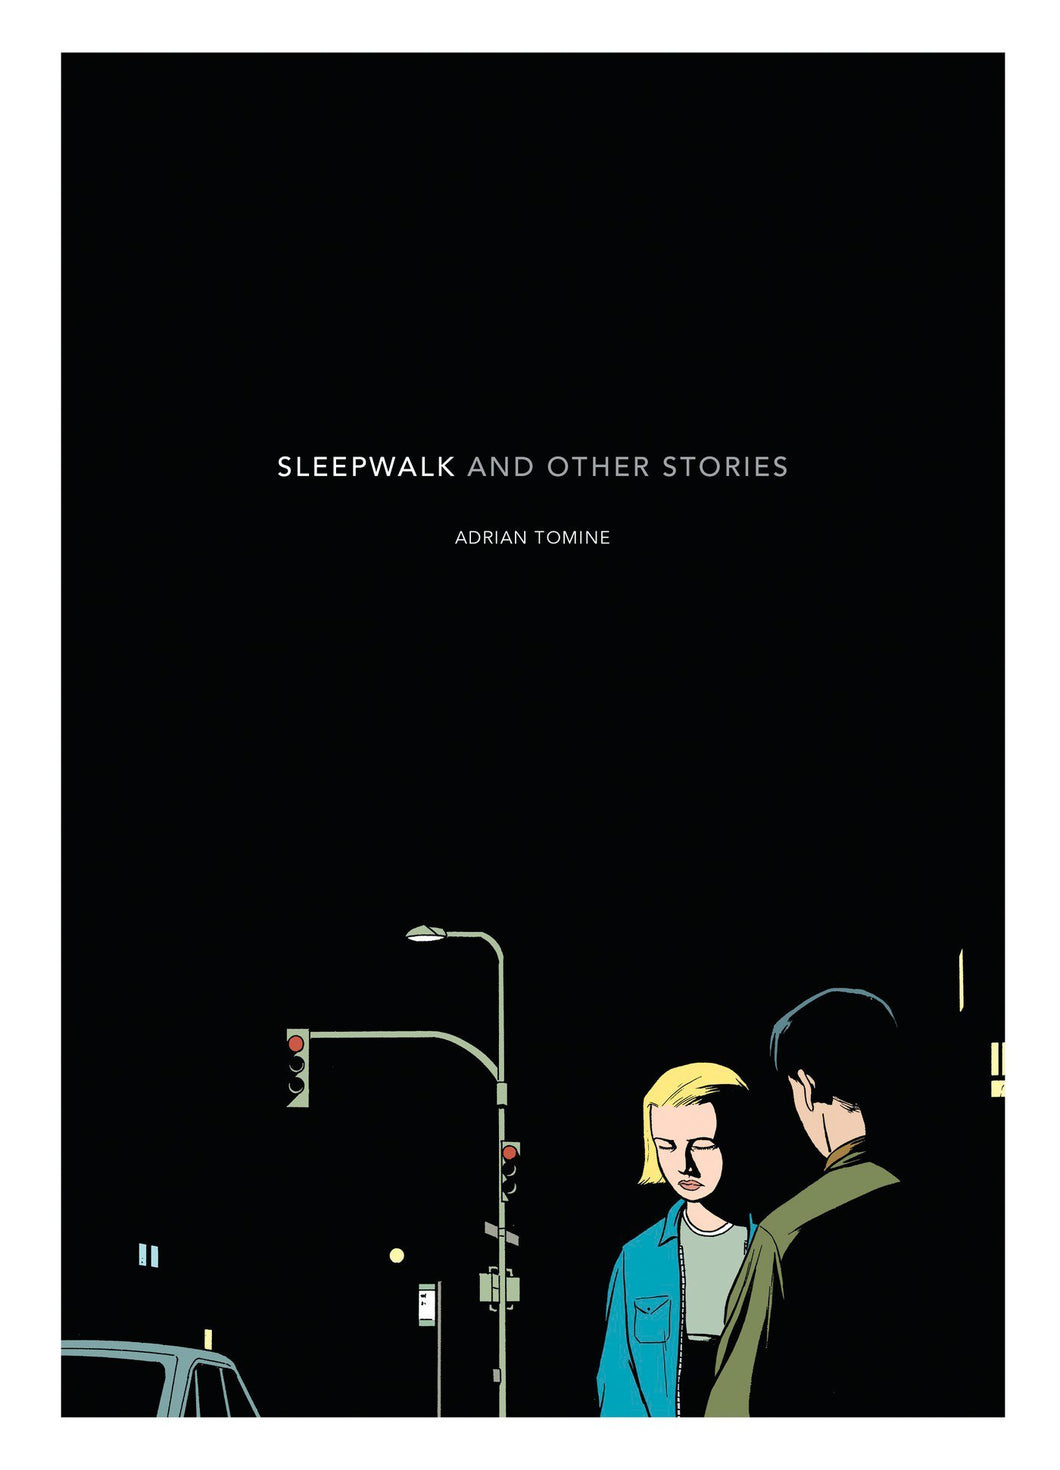 Sleepwalk: and Other Stories by Adrian Tomine